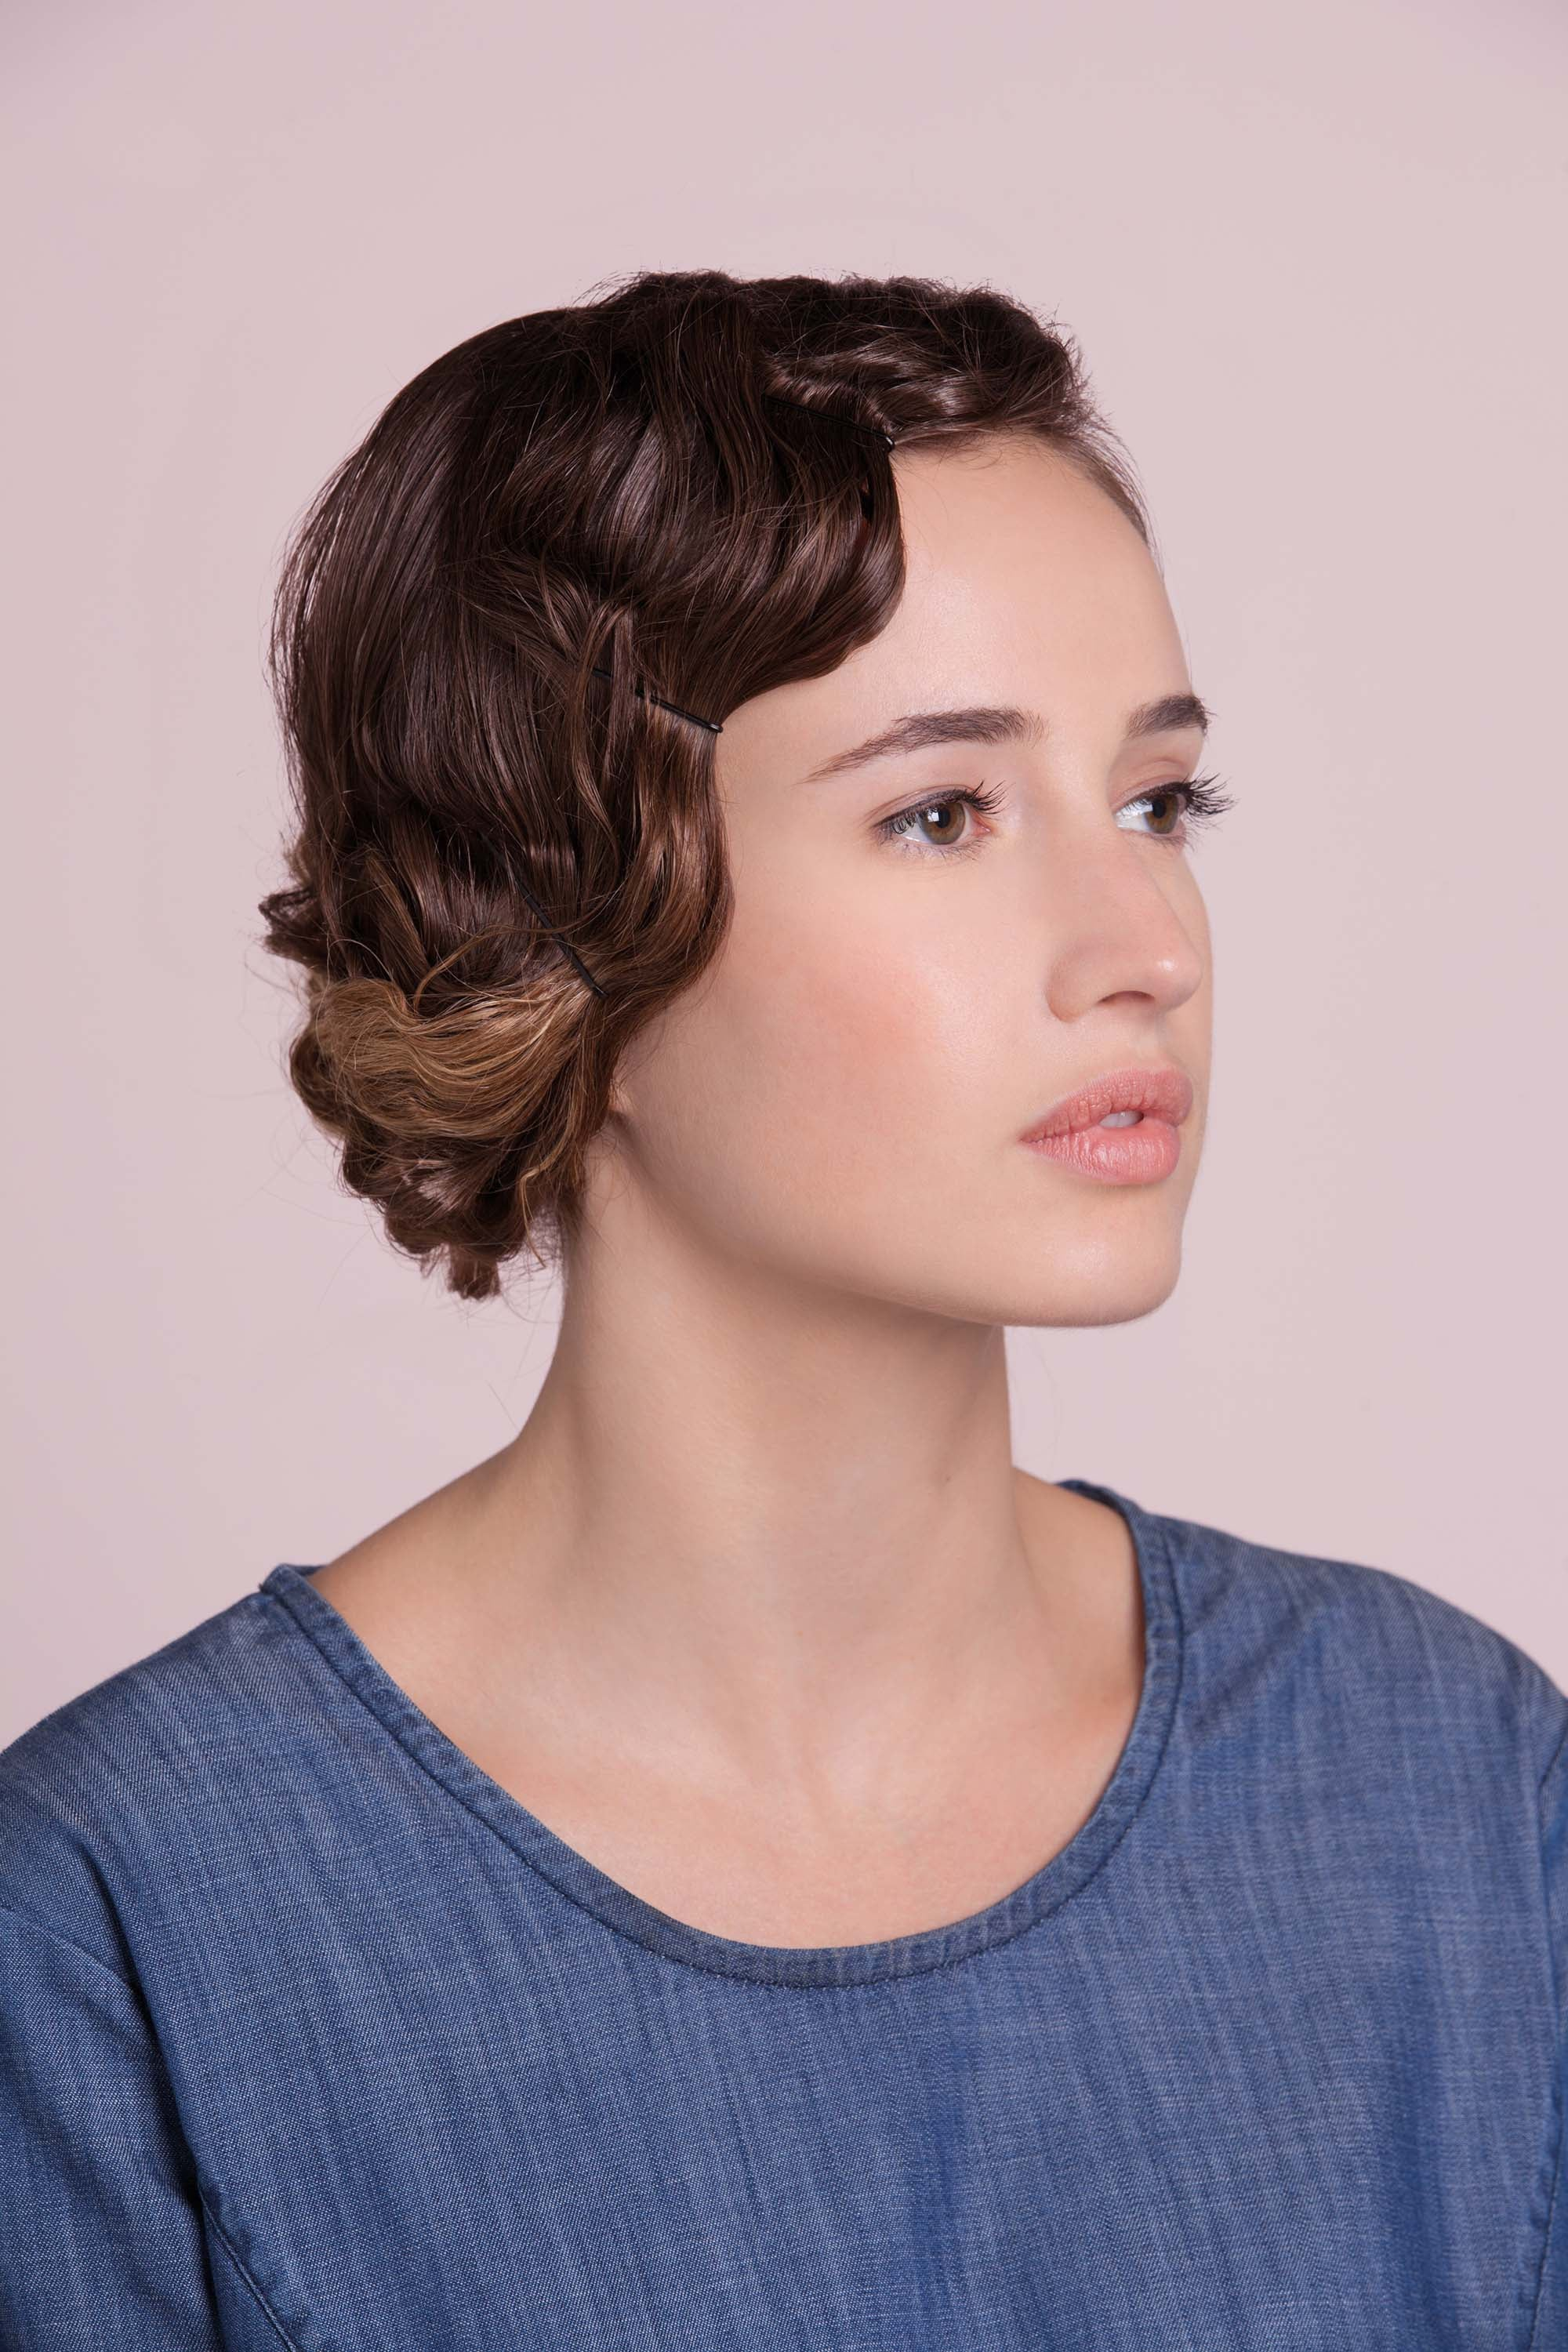 Flapper Hairstyles How to Recreate Them Without the Cut